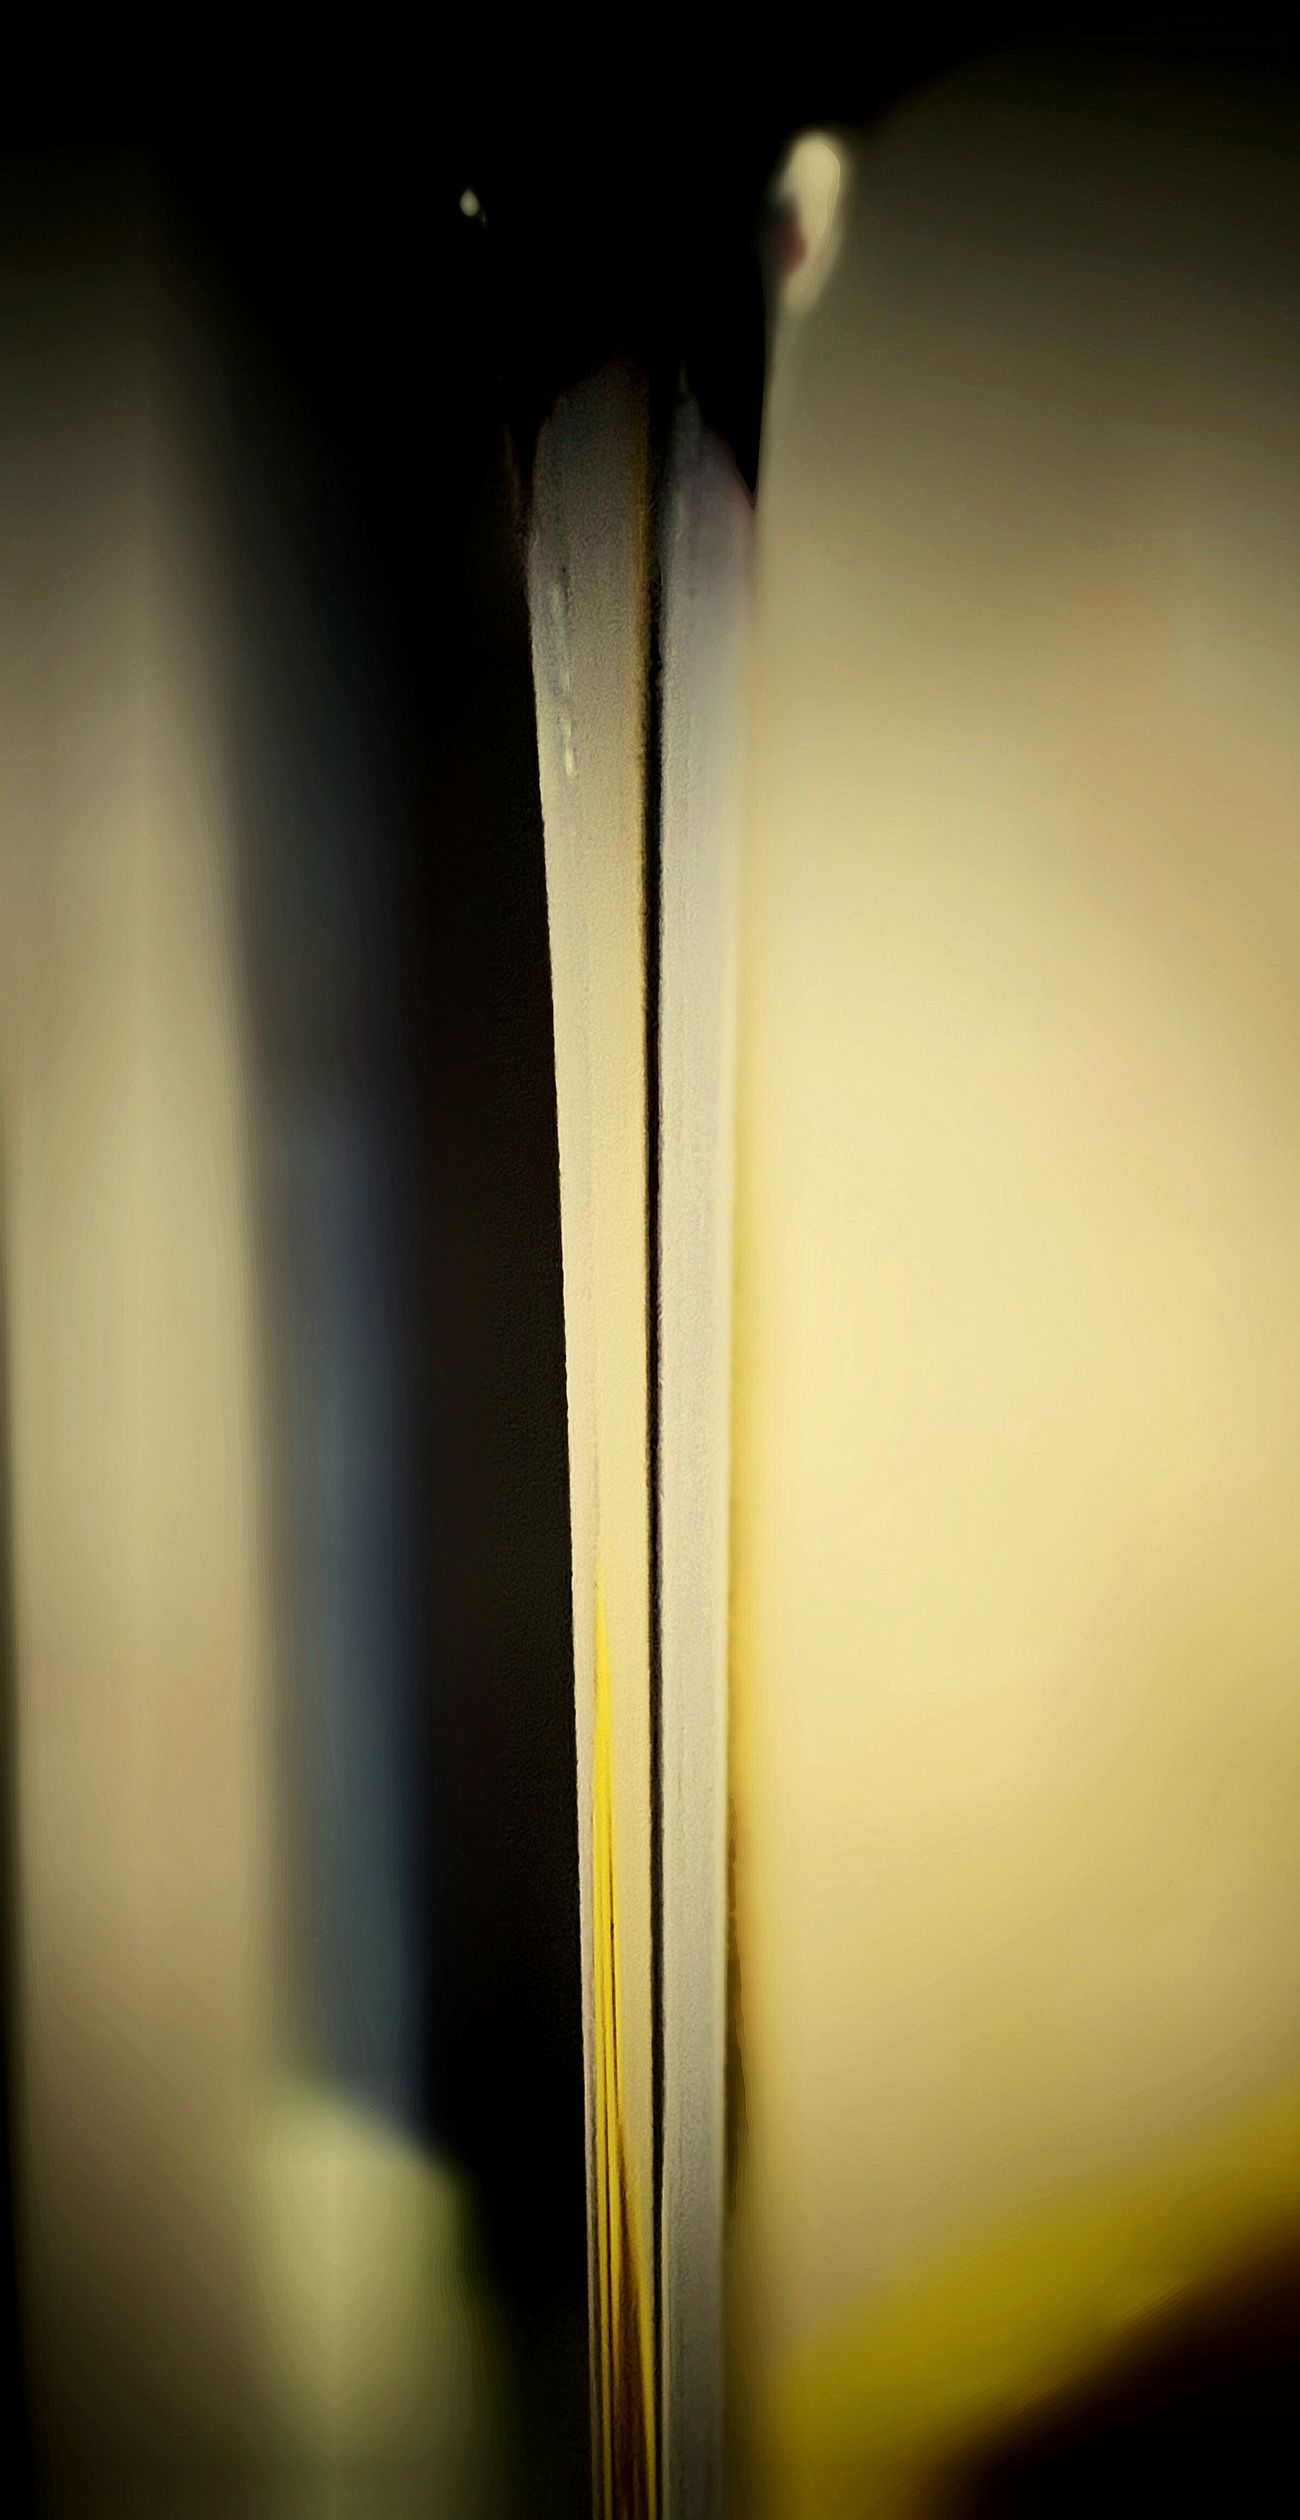 Close-up Yellow No People Samsungphoto Samsung Galaxy S6 Focus On Foreground Water Freshness Day Vertical Composition Vertical Shot Abstractart Abstract Photography